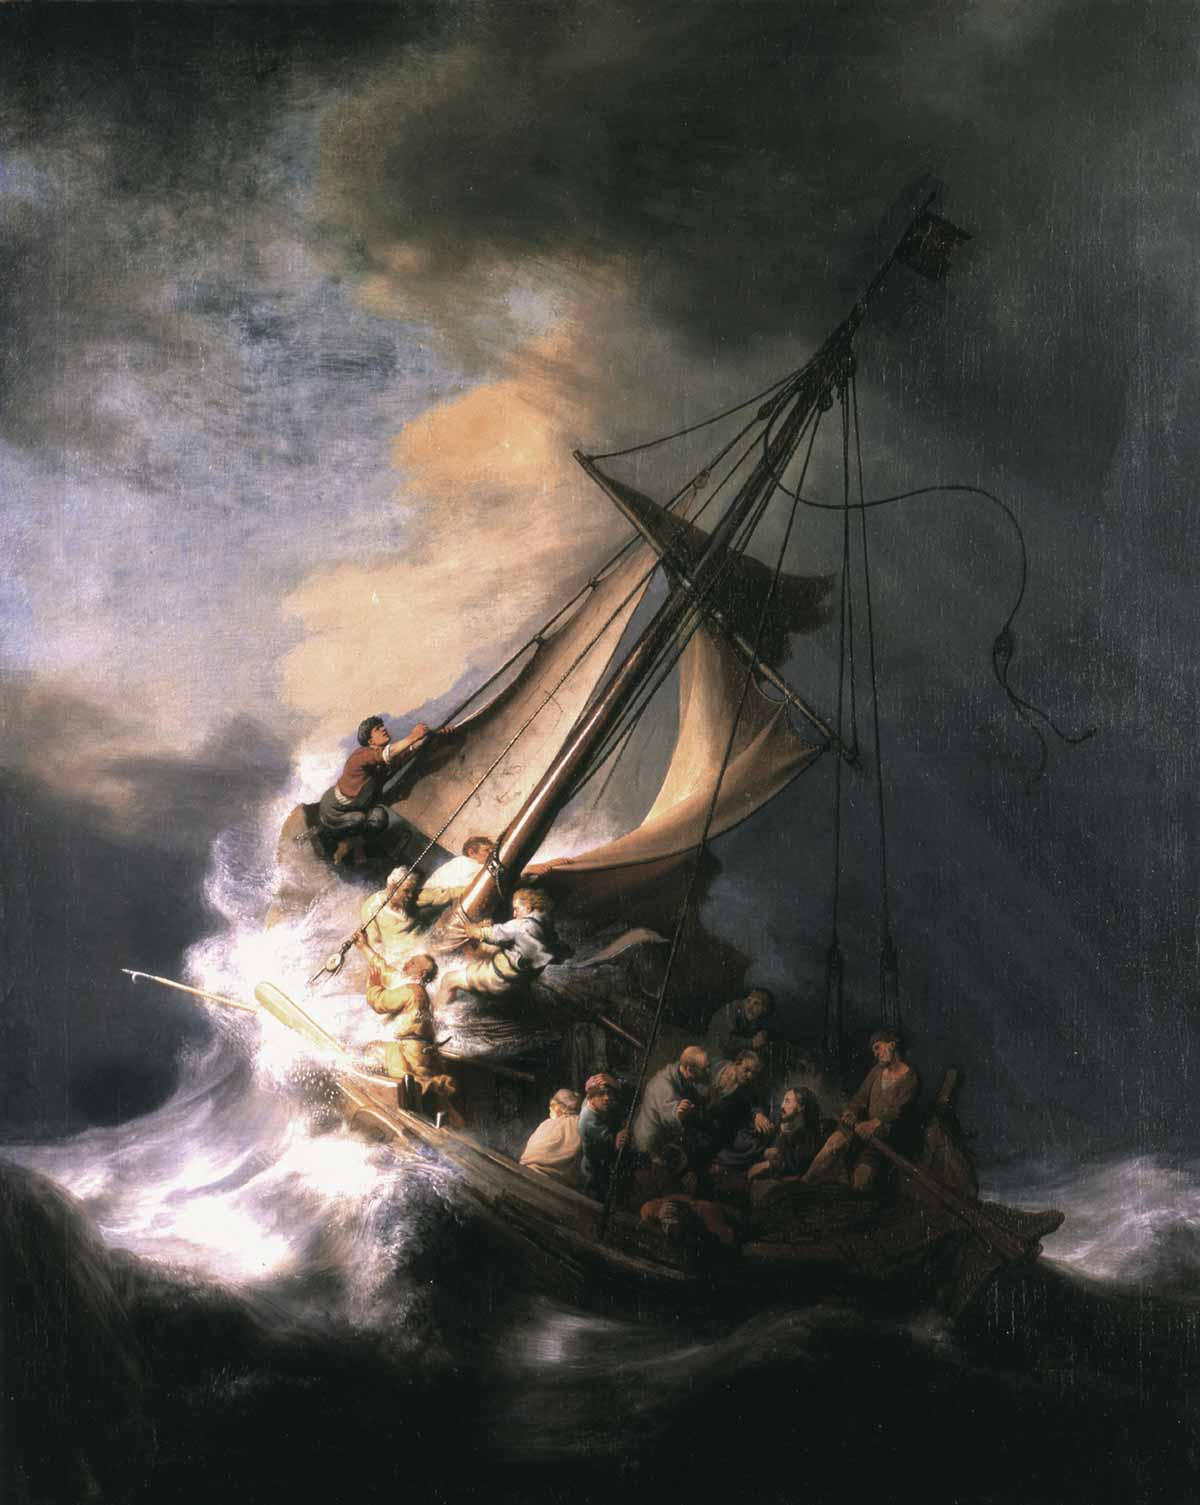 Rembrandt van Rijn's painting Christ in the Storm on the Sea of Galilee, completed in 1633, was stolen from the Isabella Stewart Gardner Museum in 1990. It has been missing since then.